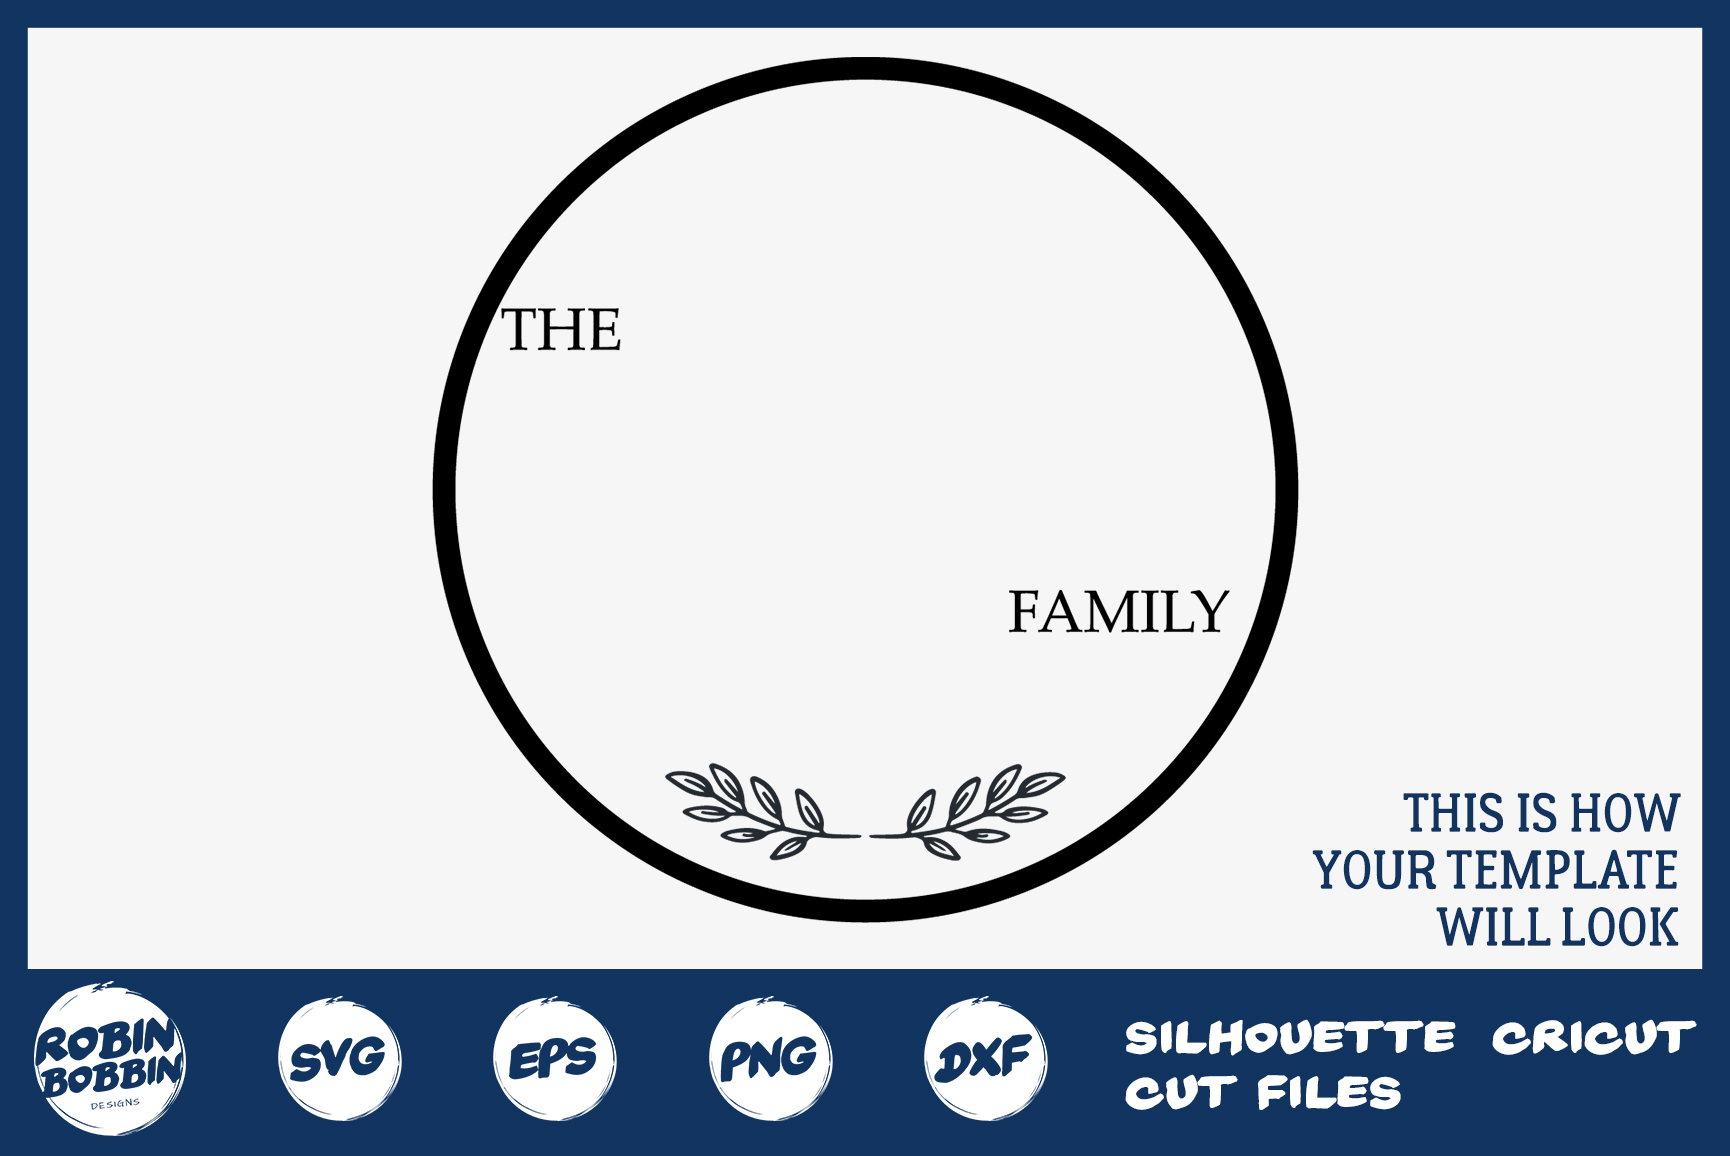 Family SVG, Newlyweds SVG, Beautiful Family Personalized SVG example image 2